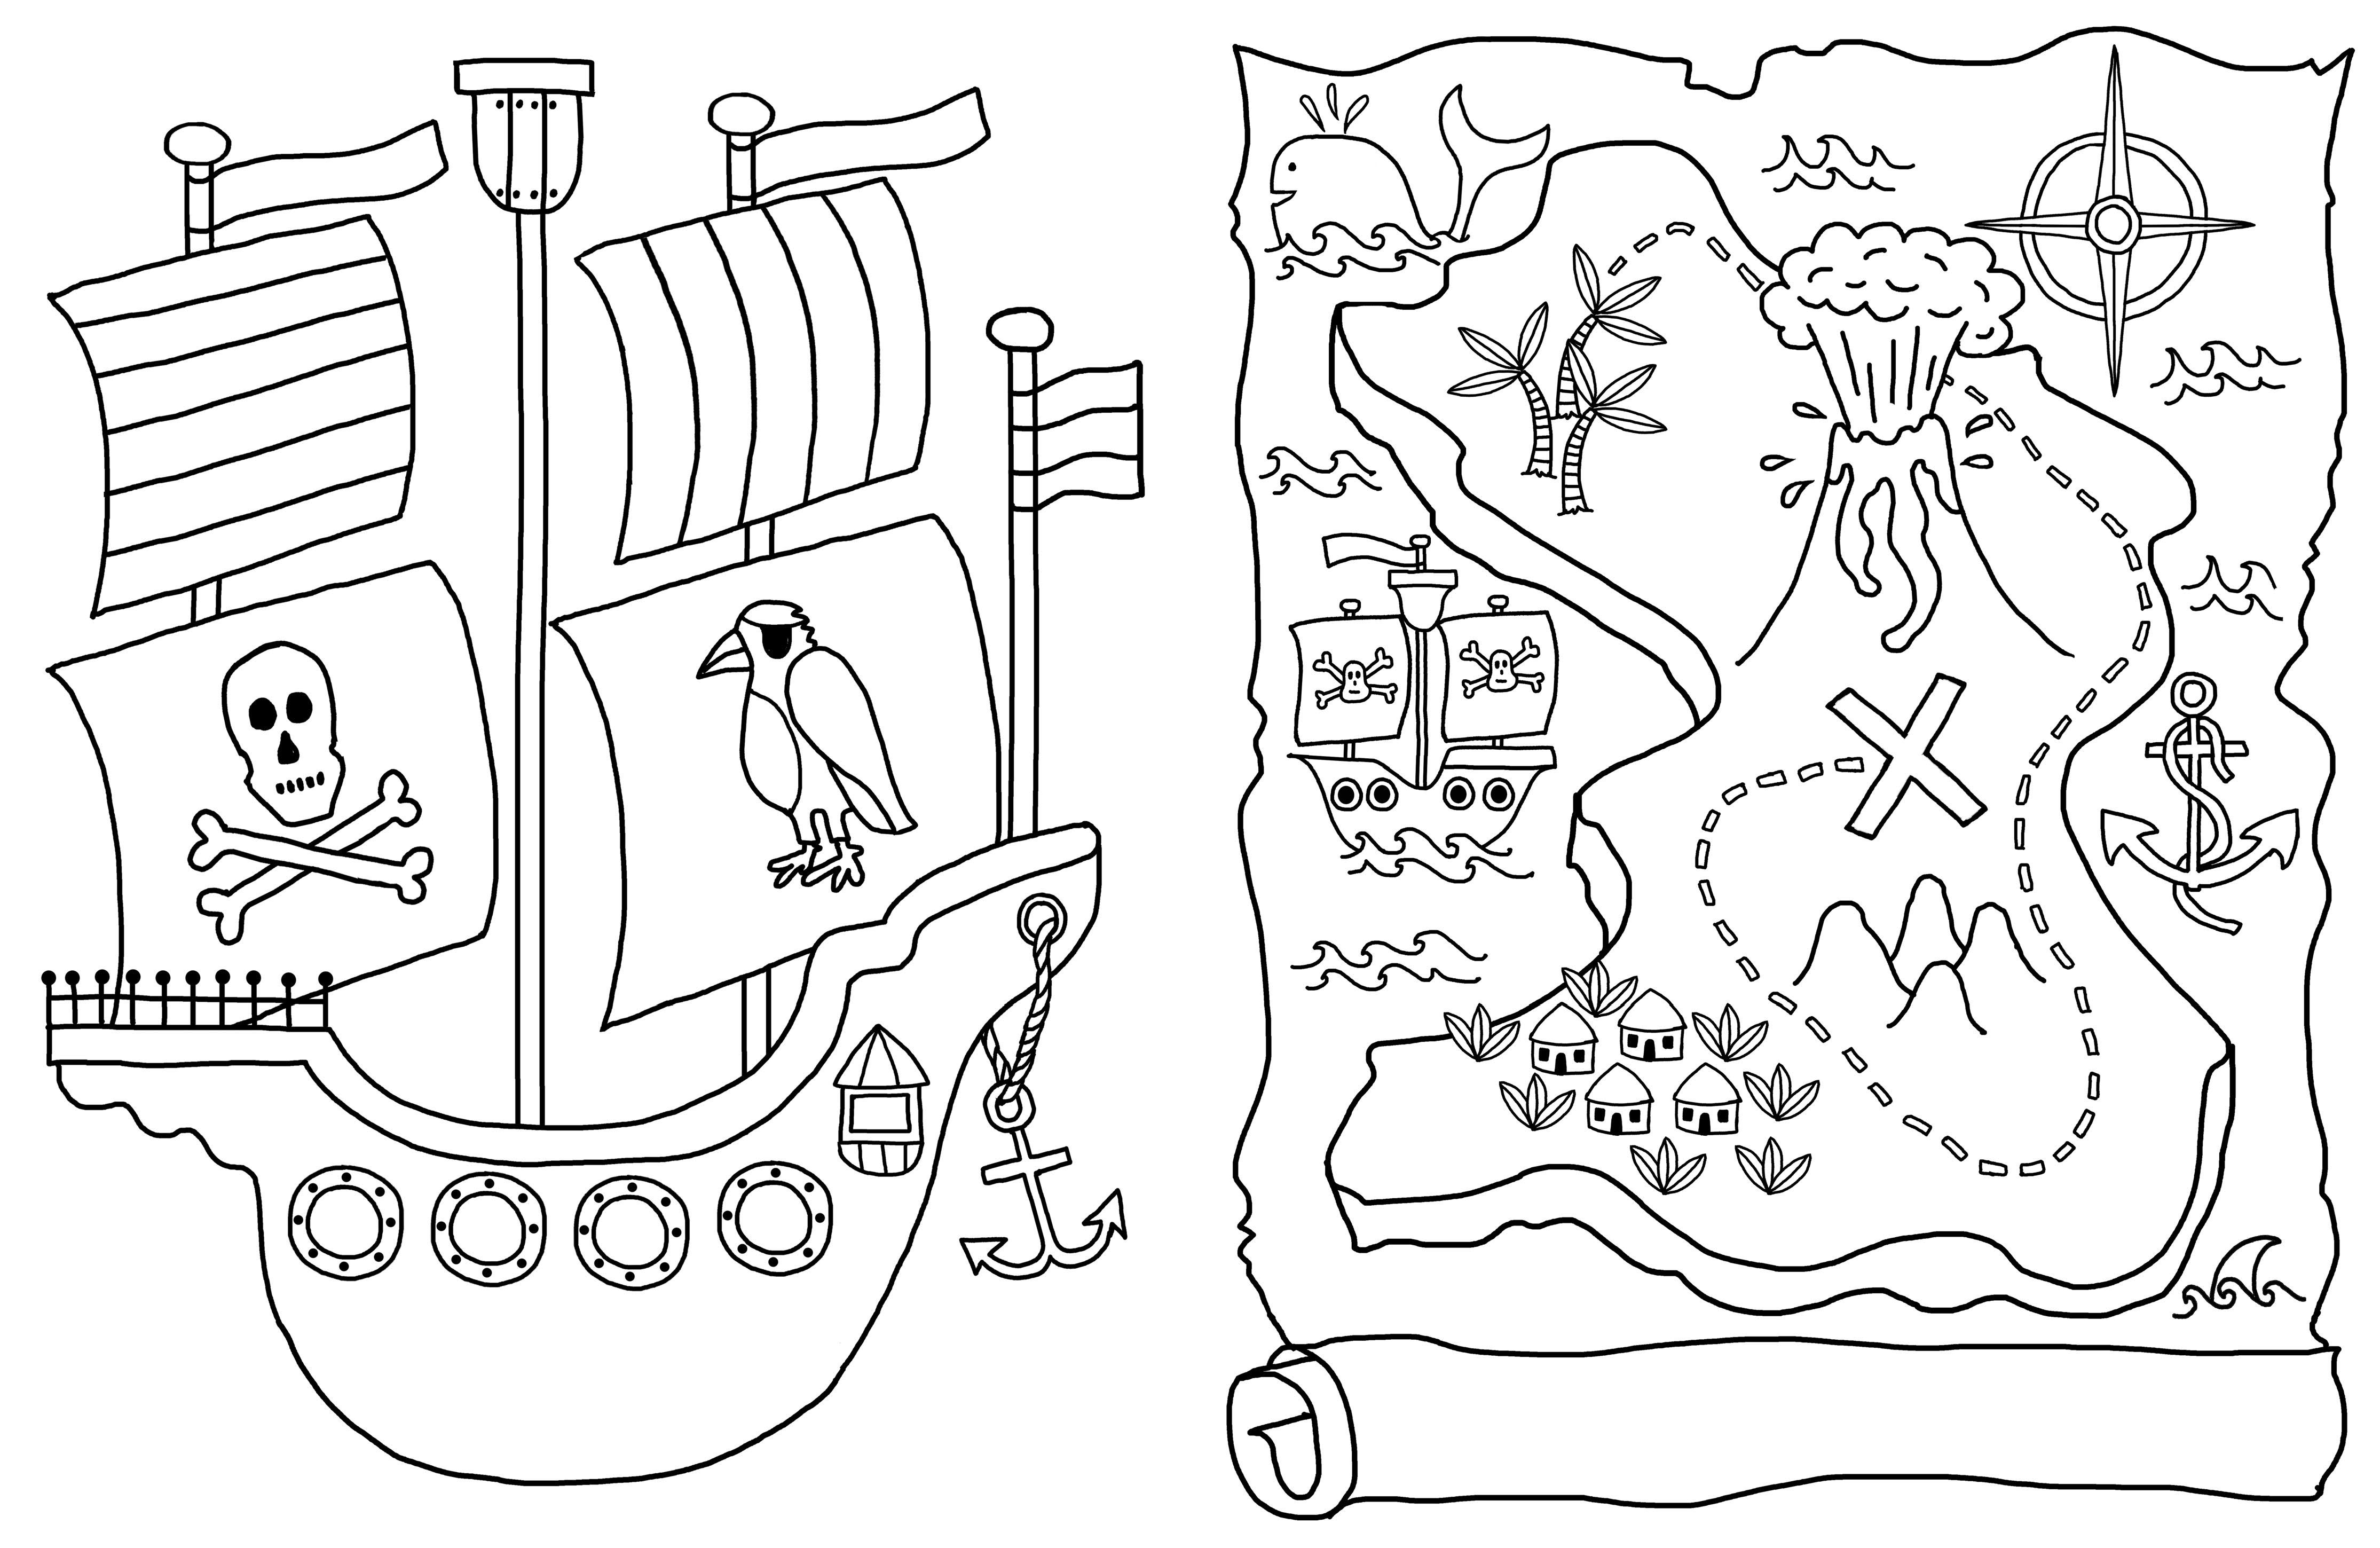 Pirate Ships And Treasure Maps In The Amazing Boys Colouring Book Coloring Books Treasure Maps Crafts For Kids